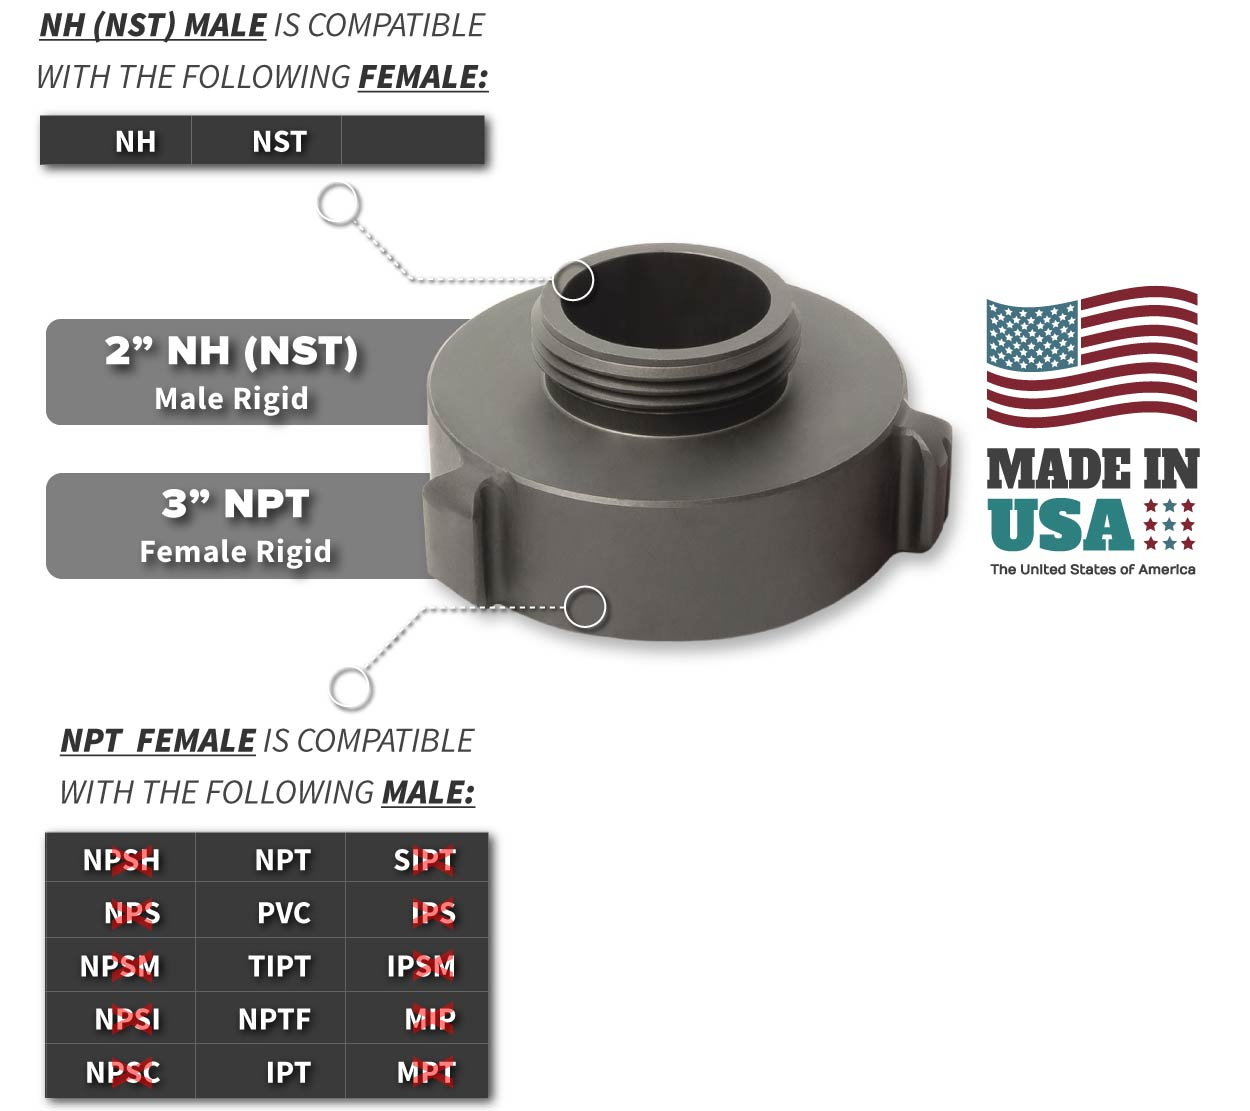 3 Inch NPT Female x 2 Inch NH-NST Male Compatibility Thread Chart